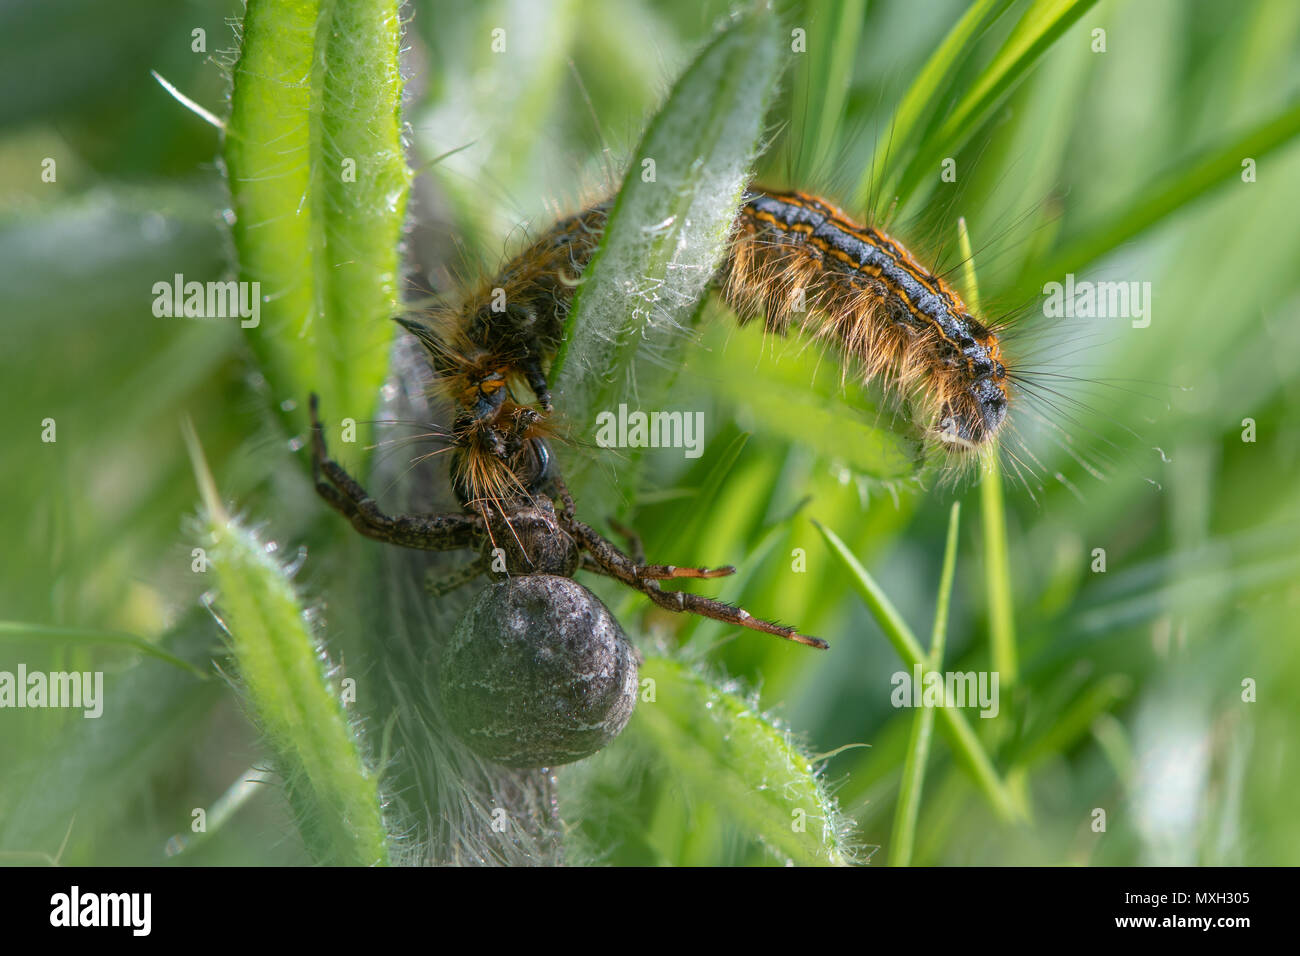 Crab spider attacking lackey moth caterpillar. Struggle between Xysticus sp. and Malacosoma neustria amongst low vegetation, finally won by spider - Stock Image